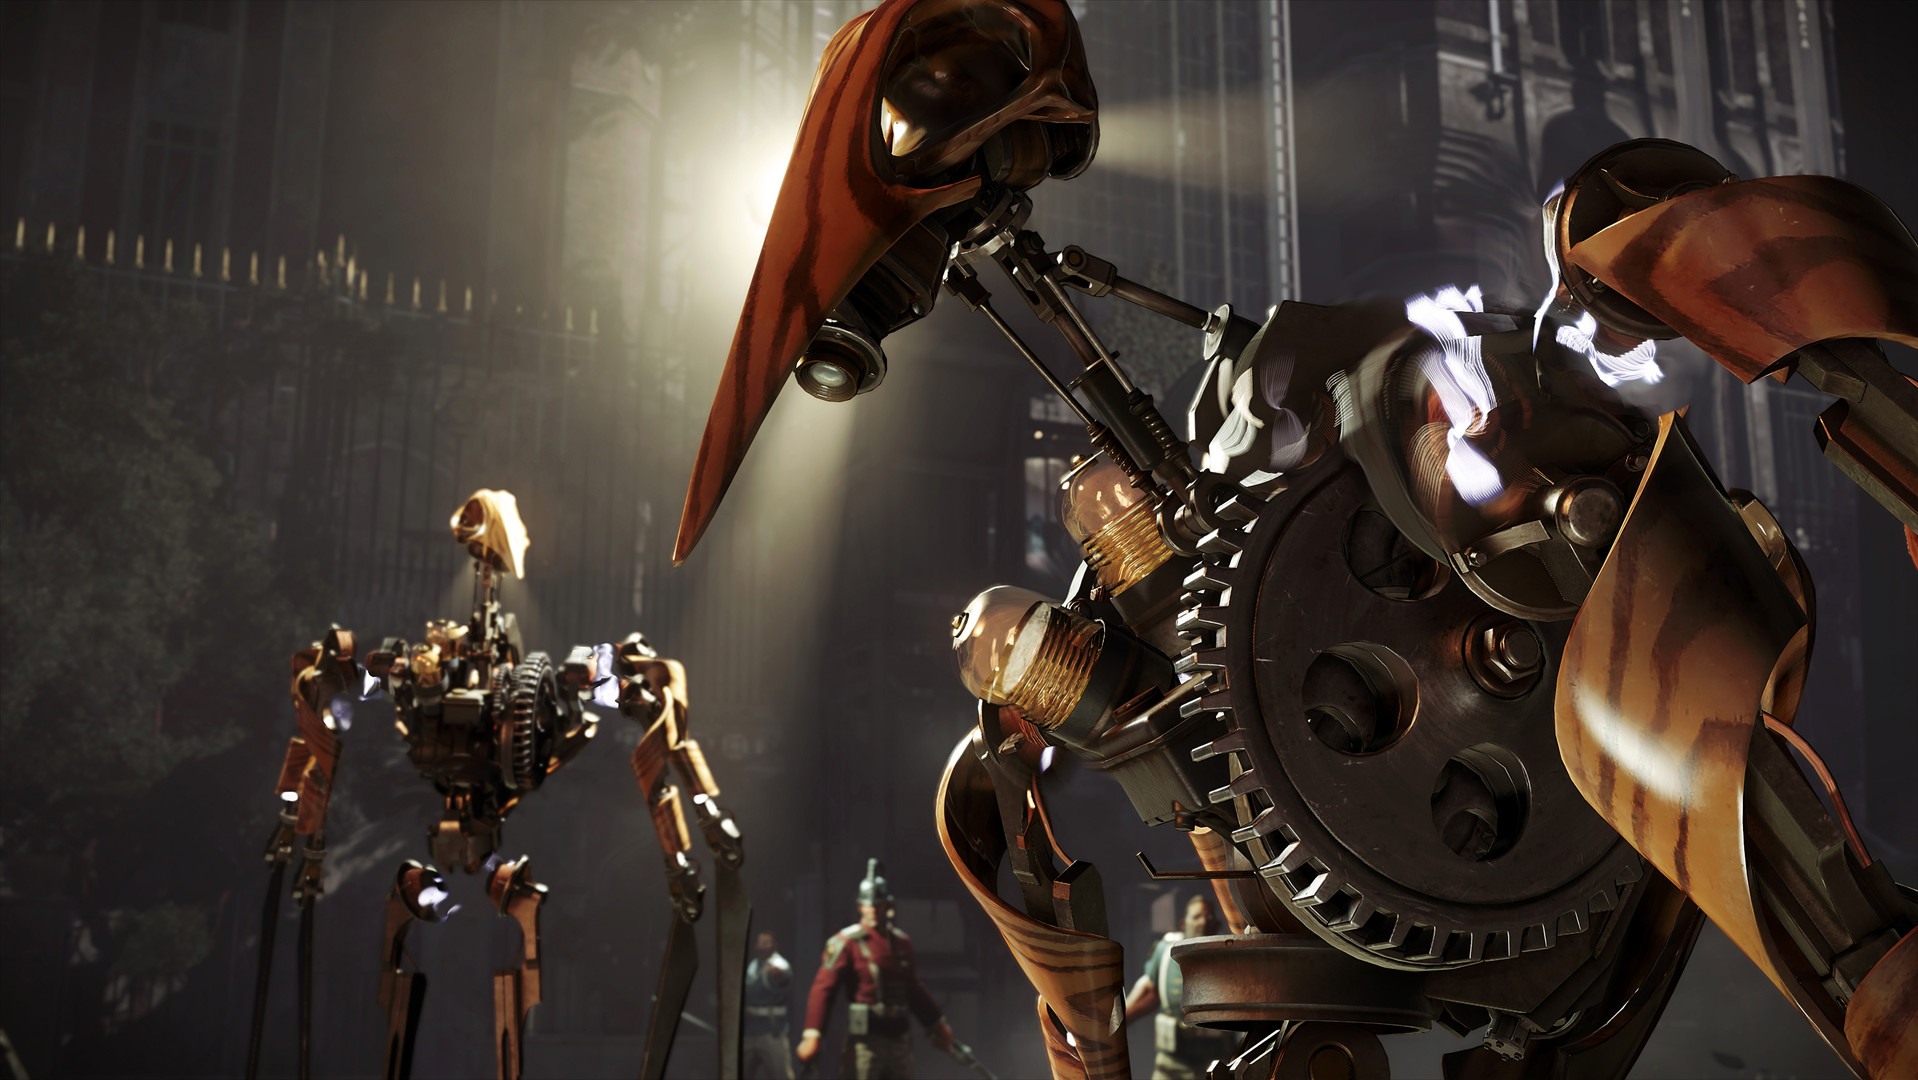 download dishonored 2 digital deluxe limited edition cracked by steampunks cpy baldman include all dlc and latest update copiapop diskokosmiko